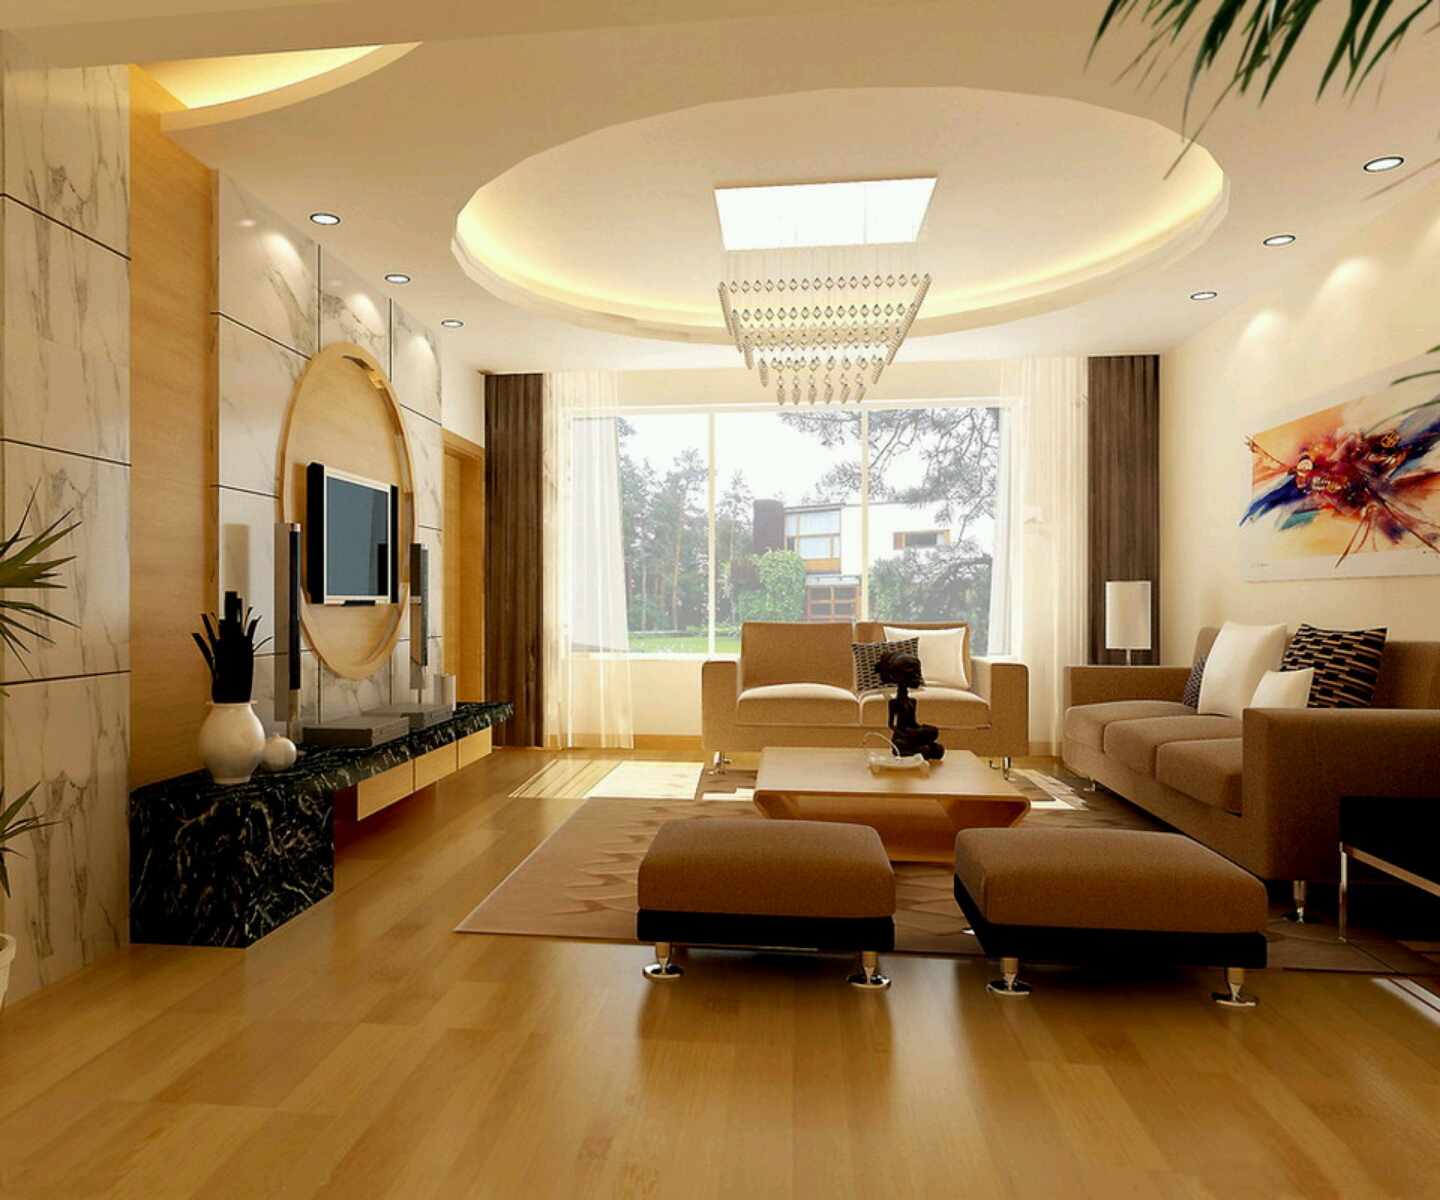 New home designs latest modern interior decoration for Home drawing room design